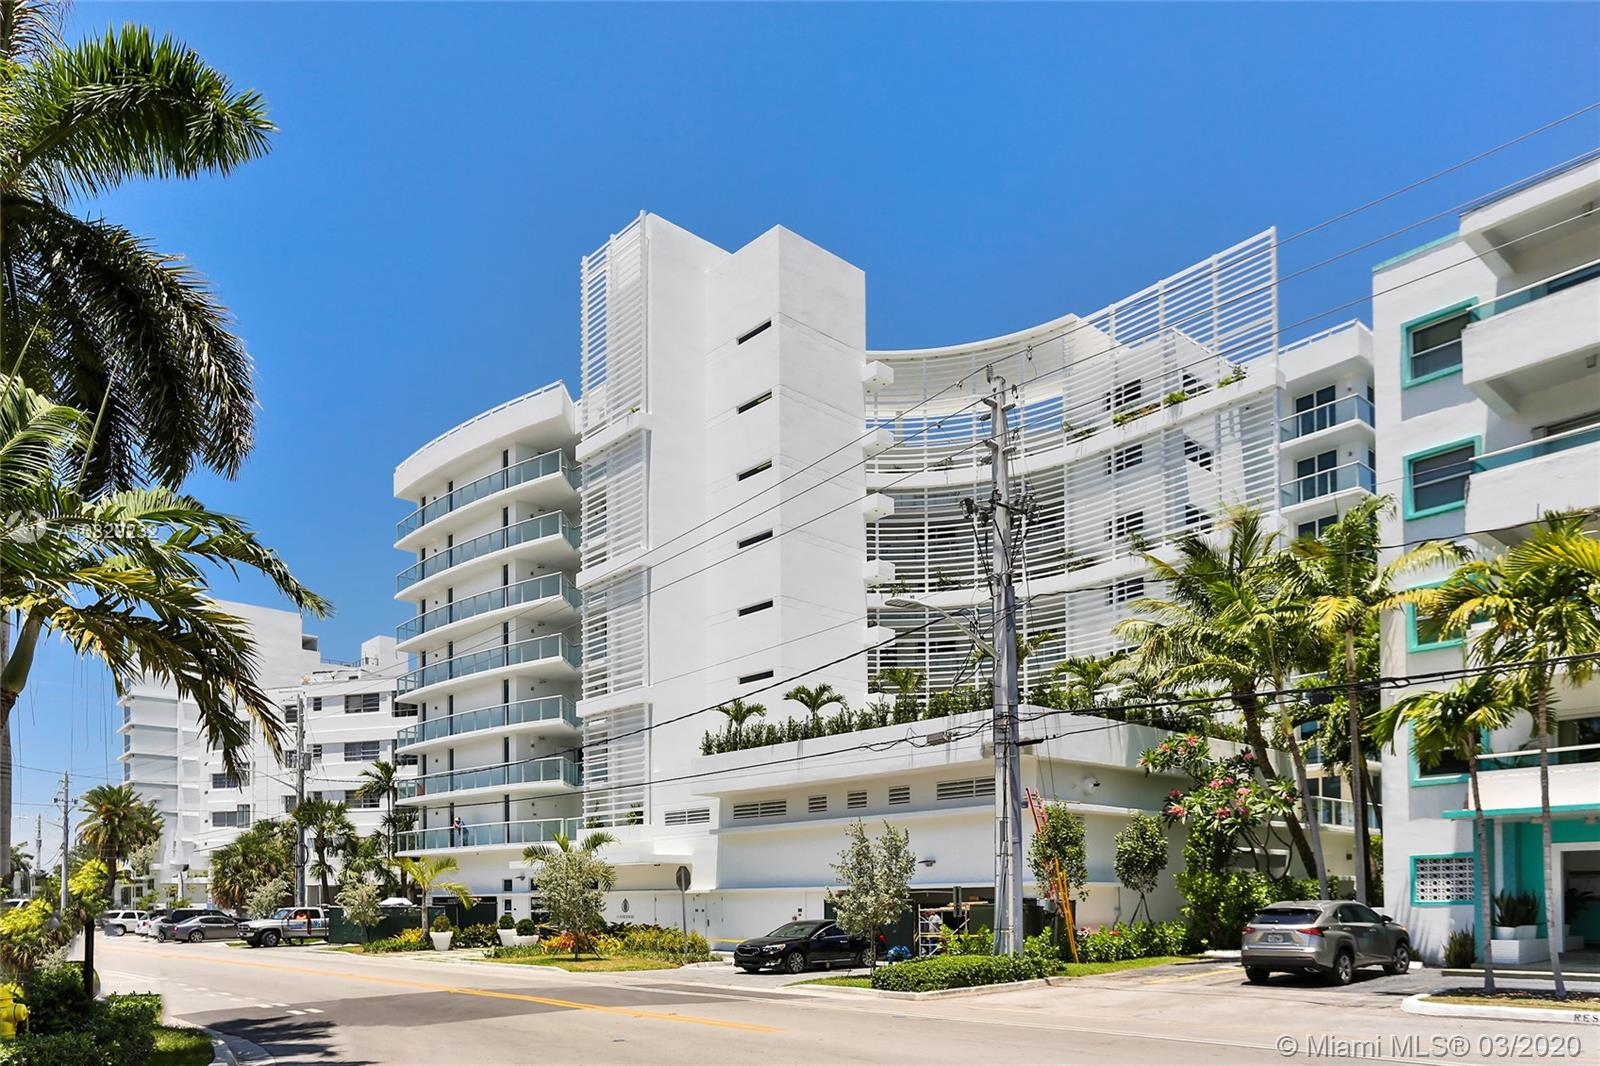 This amazing Penthouse Unit in this new O Residences building is up for sale. This unit has a great split layout with large 2 bedrooms and living areas. It has top of the line Viking appliances. This unit comes with two parking spaces and an extra large storage unit with AC. The building has views over canal and Haulover Park. The building has great amenities including a nice sized pool, gym, water sports, boat service etc. The ownership of this unit comes with boat membership. This building is walking distance to Bay Harbor Islands shops, Bal Harbour Shops and Bal Harbour Beaches. The K8 school on the island is one of the best in Florida. Bay Harbor Islands have their own Police department and considered as one of the safest city in South Florida.